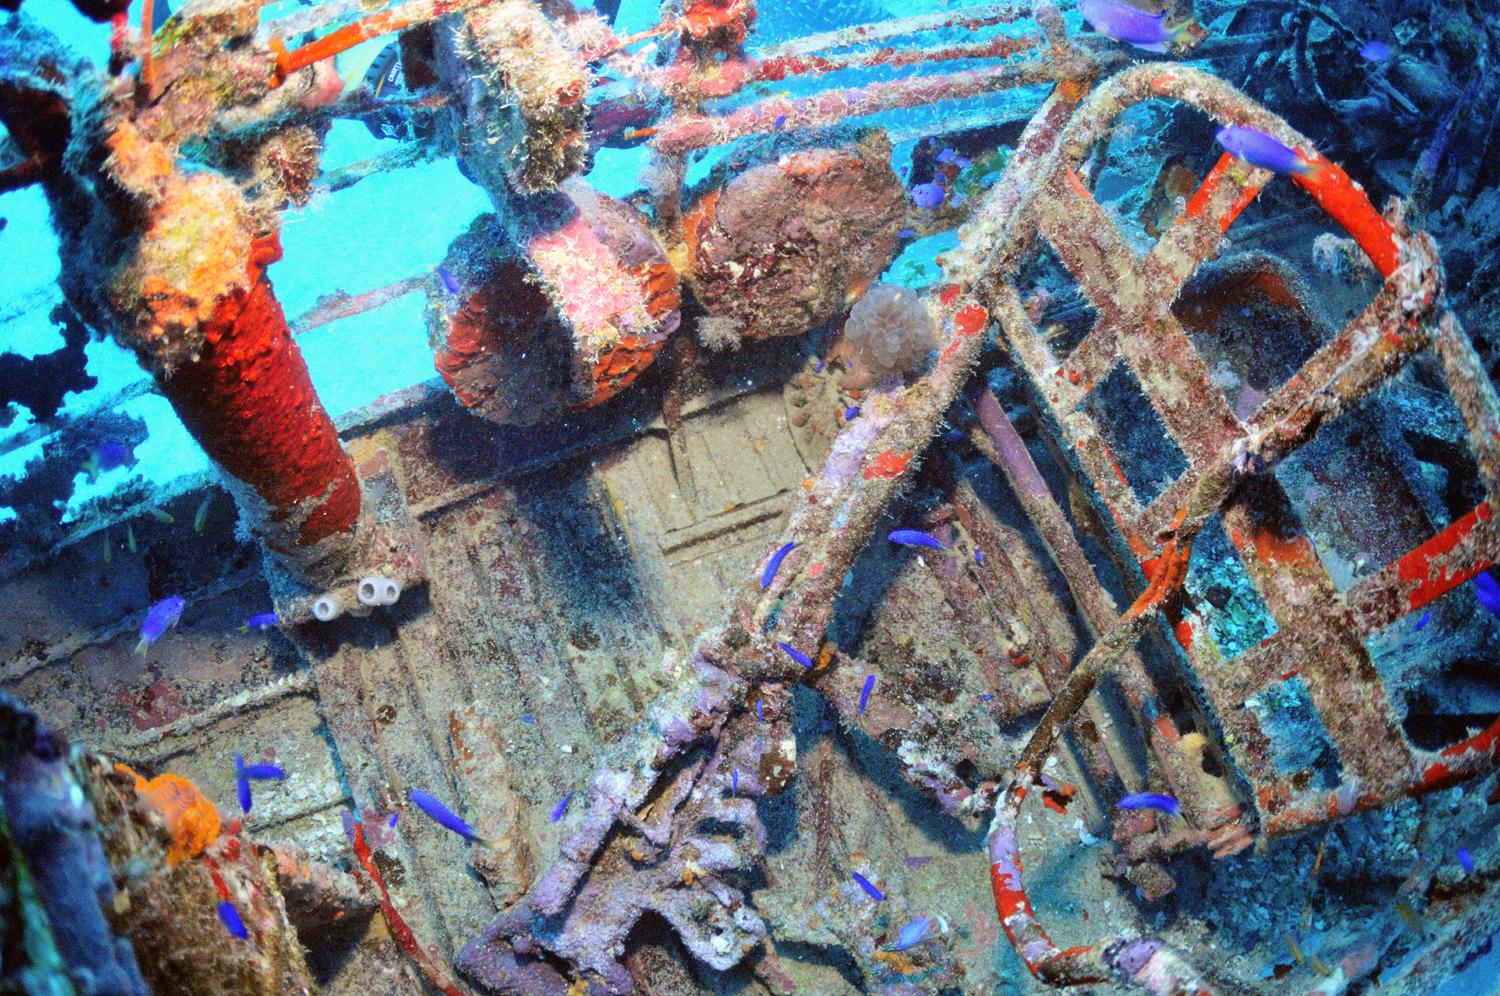 7.7mm machine gun and ammo drums in the rear cockpit of the Jake #2 wreck